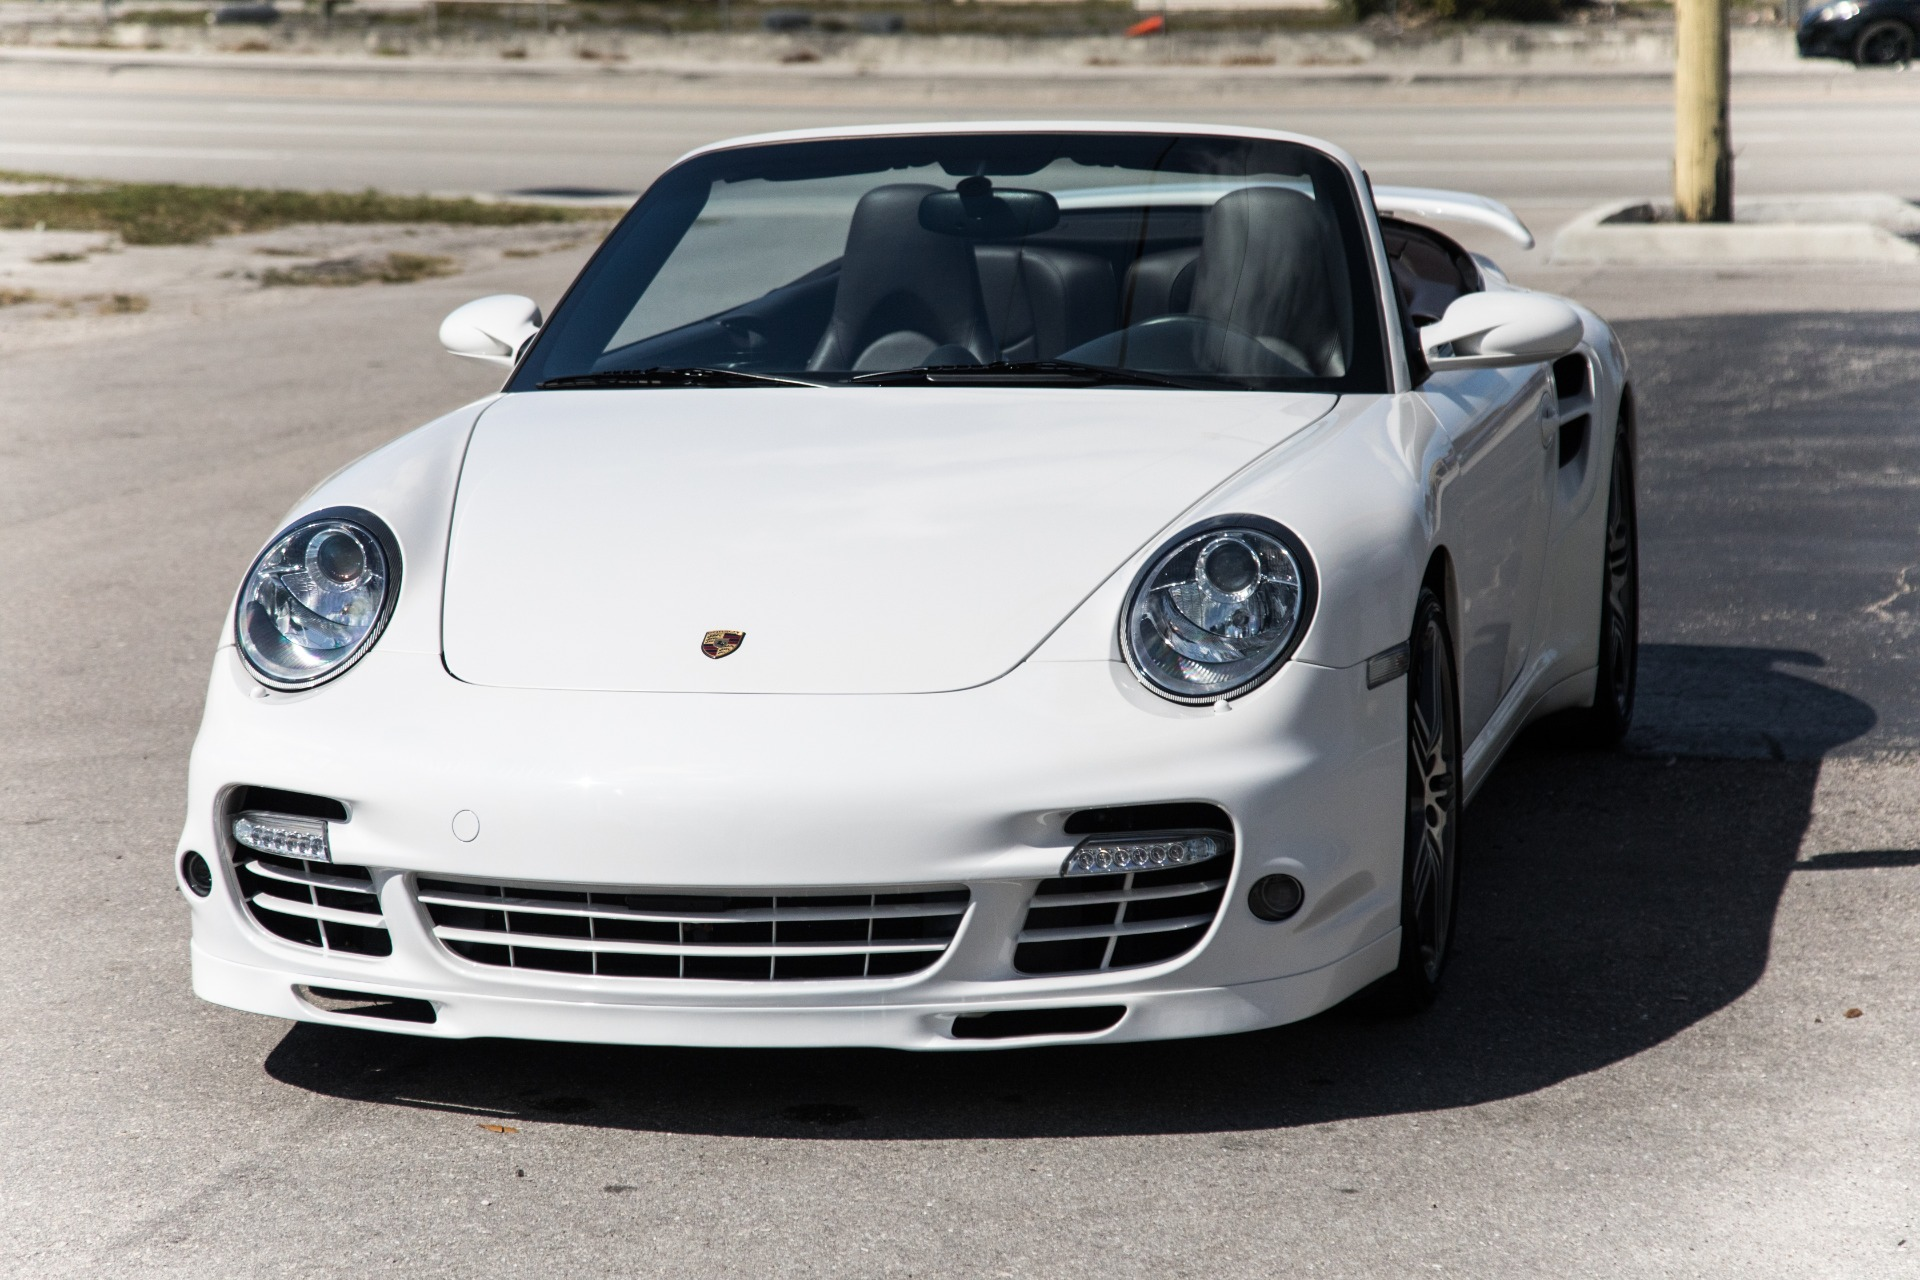 Used-2009-Porsche-911-Turbo